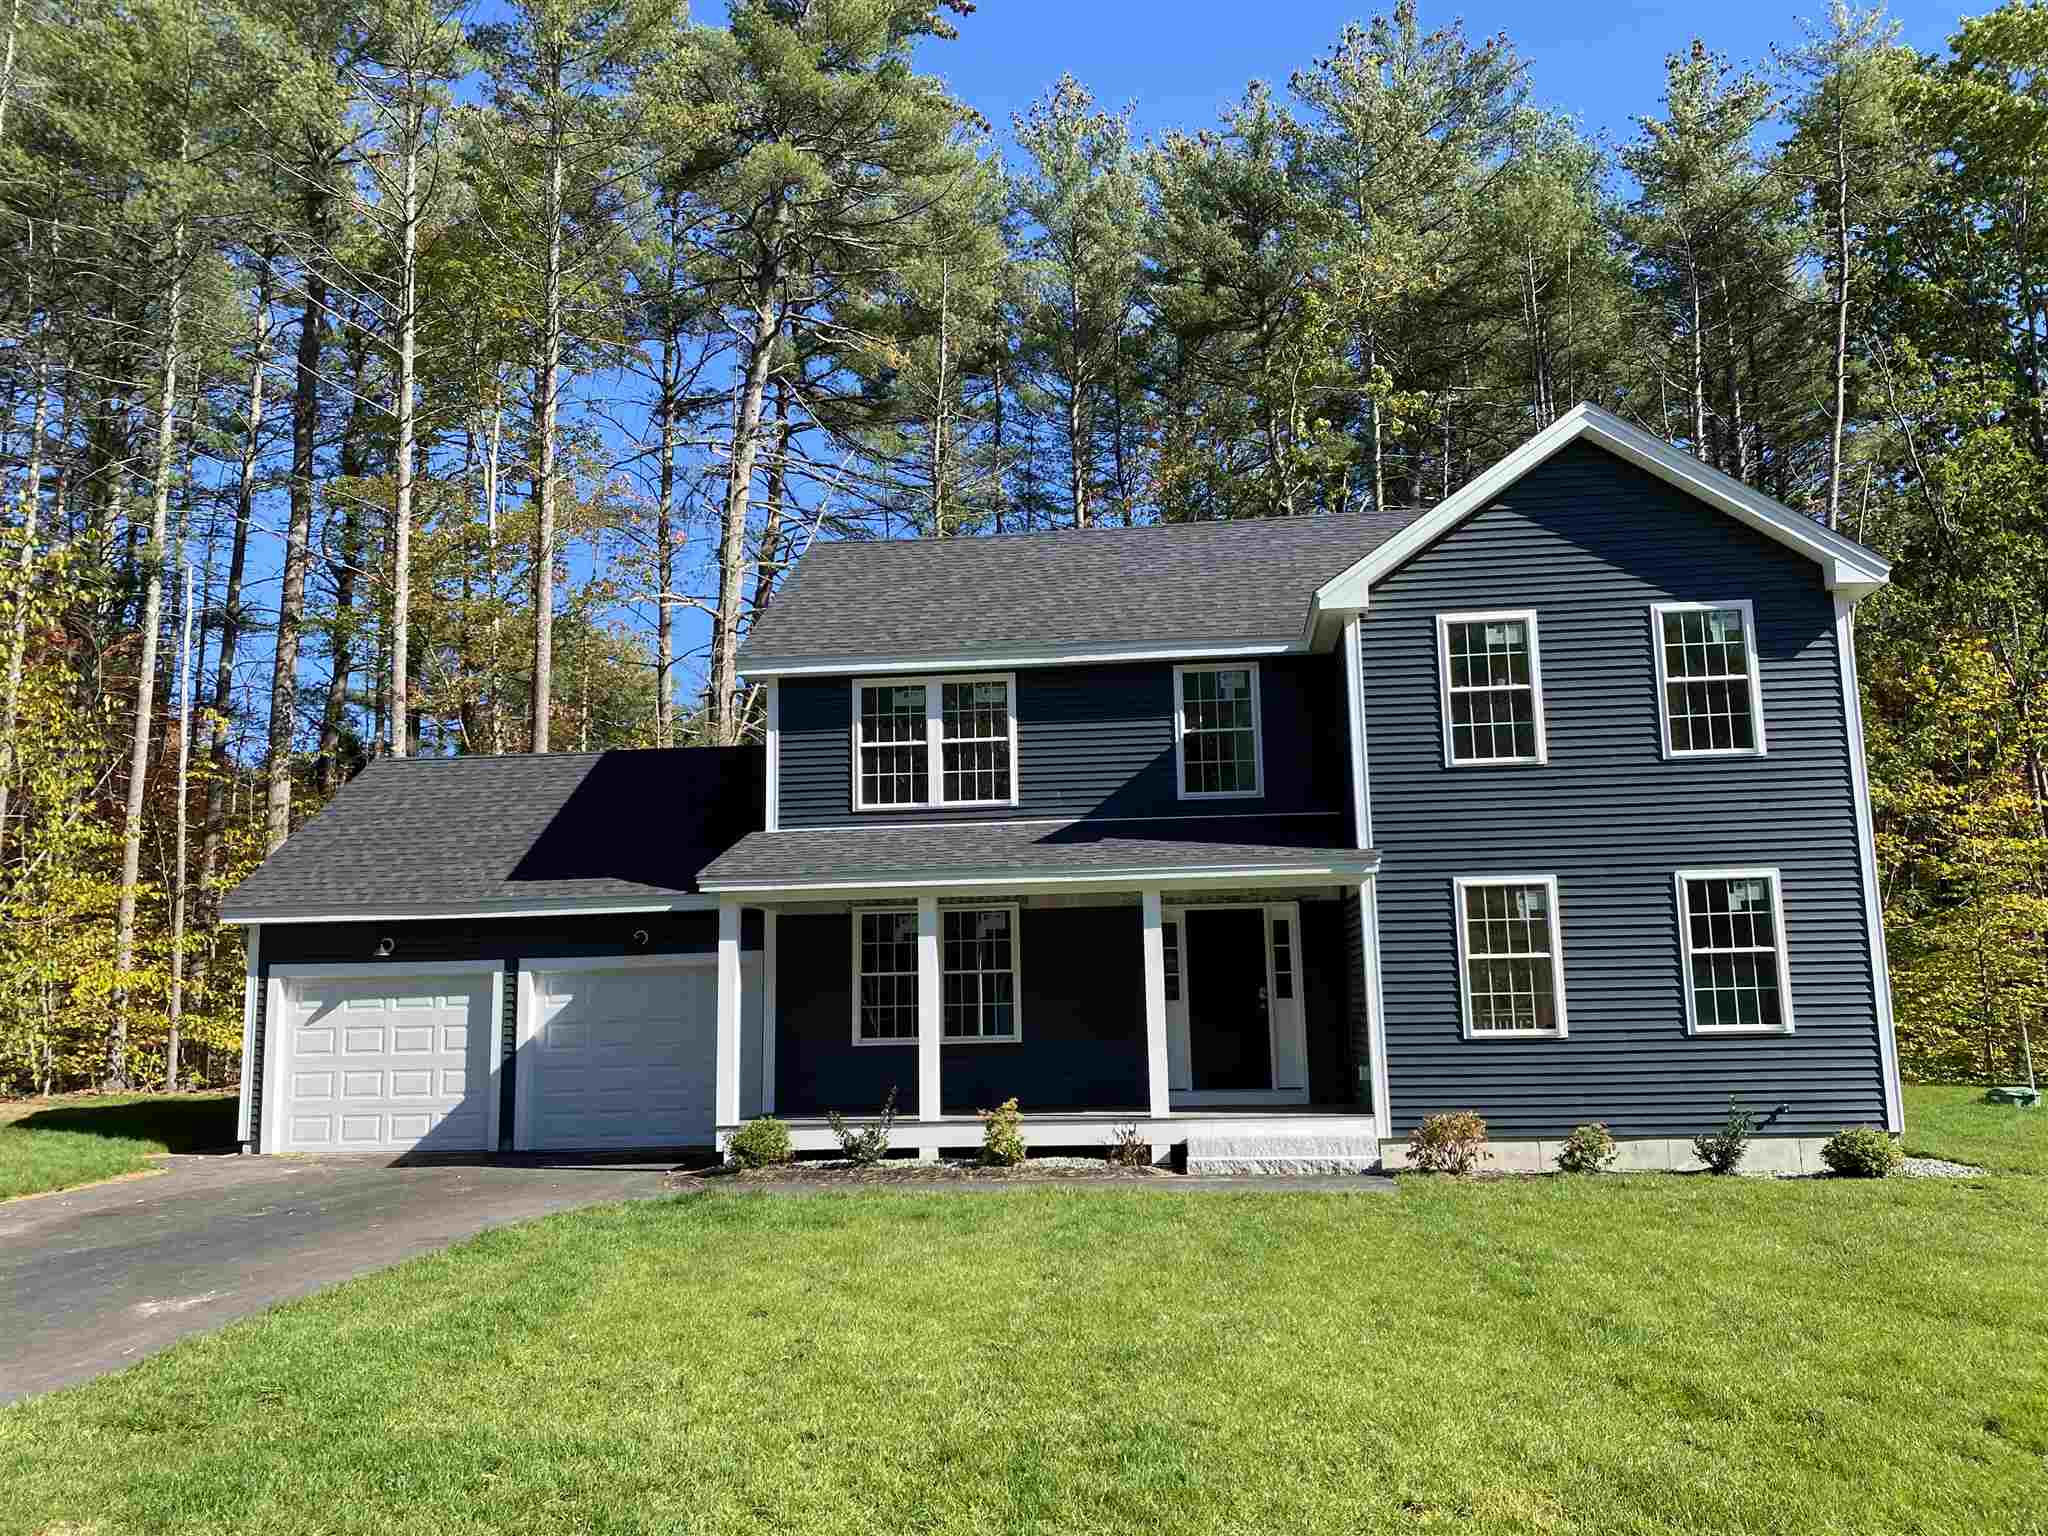 MLS 4809541: 2 Dorothy Drive-Unit 10, Amherst NH